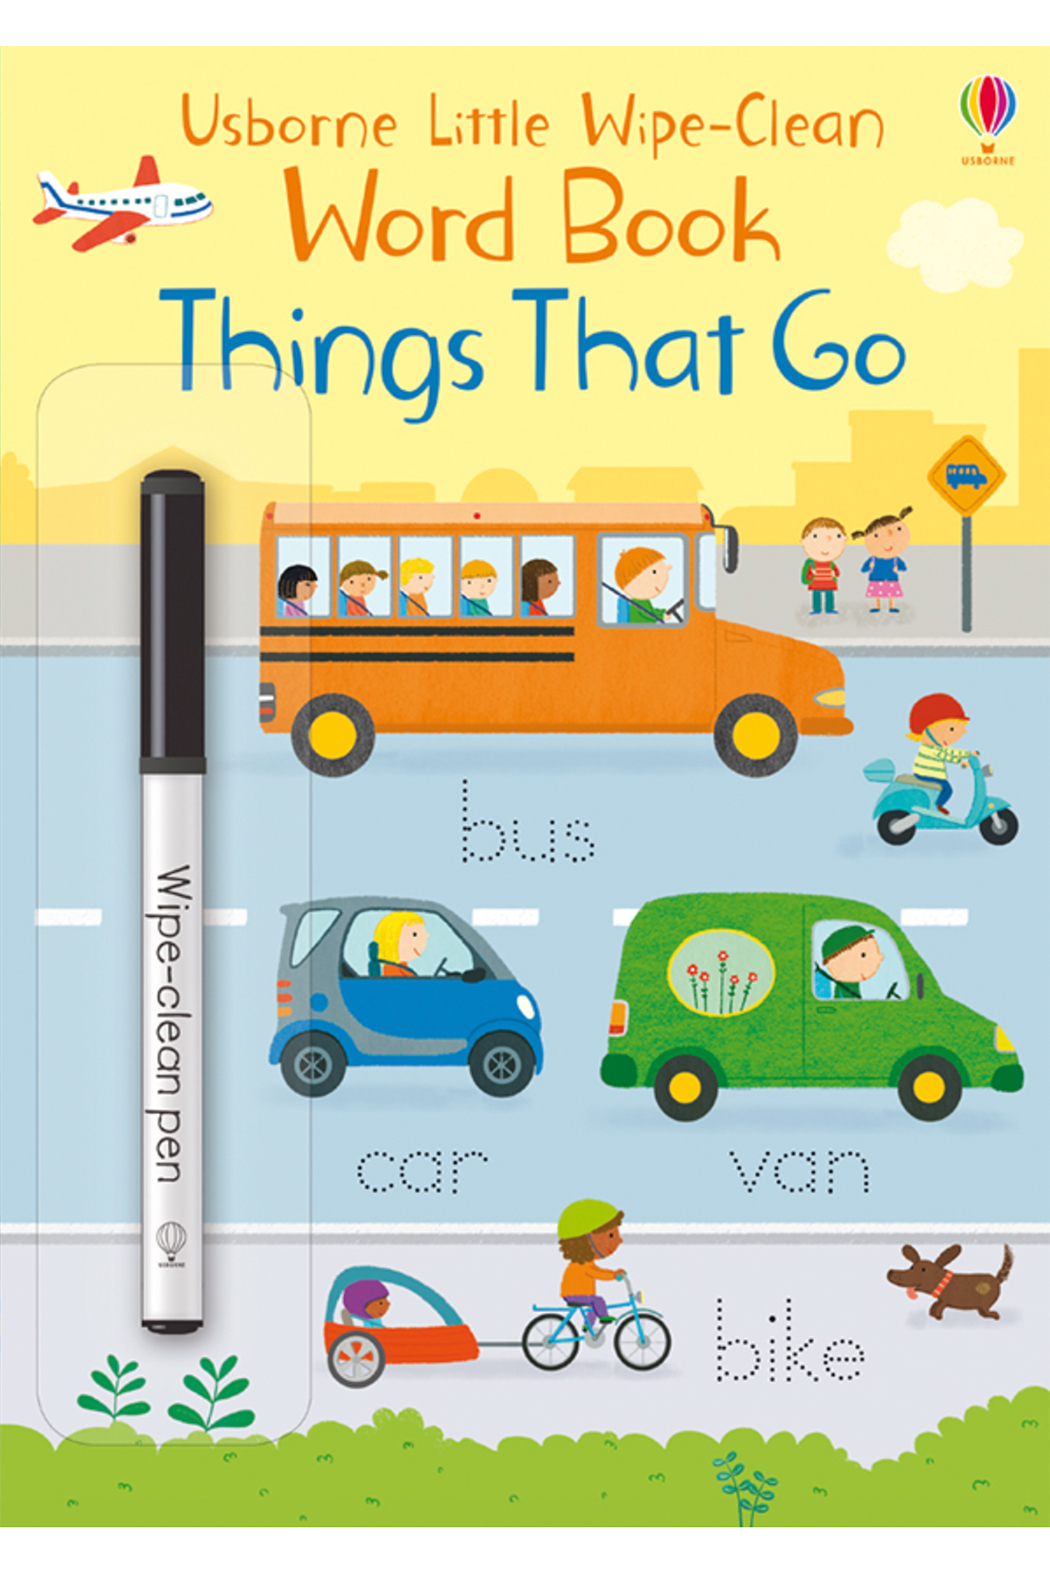 Usborne Little Wipe-Clean Word Book: Things That Go - Main Image